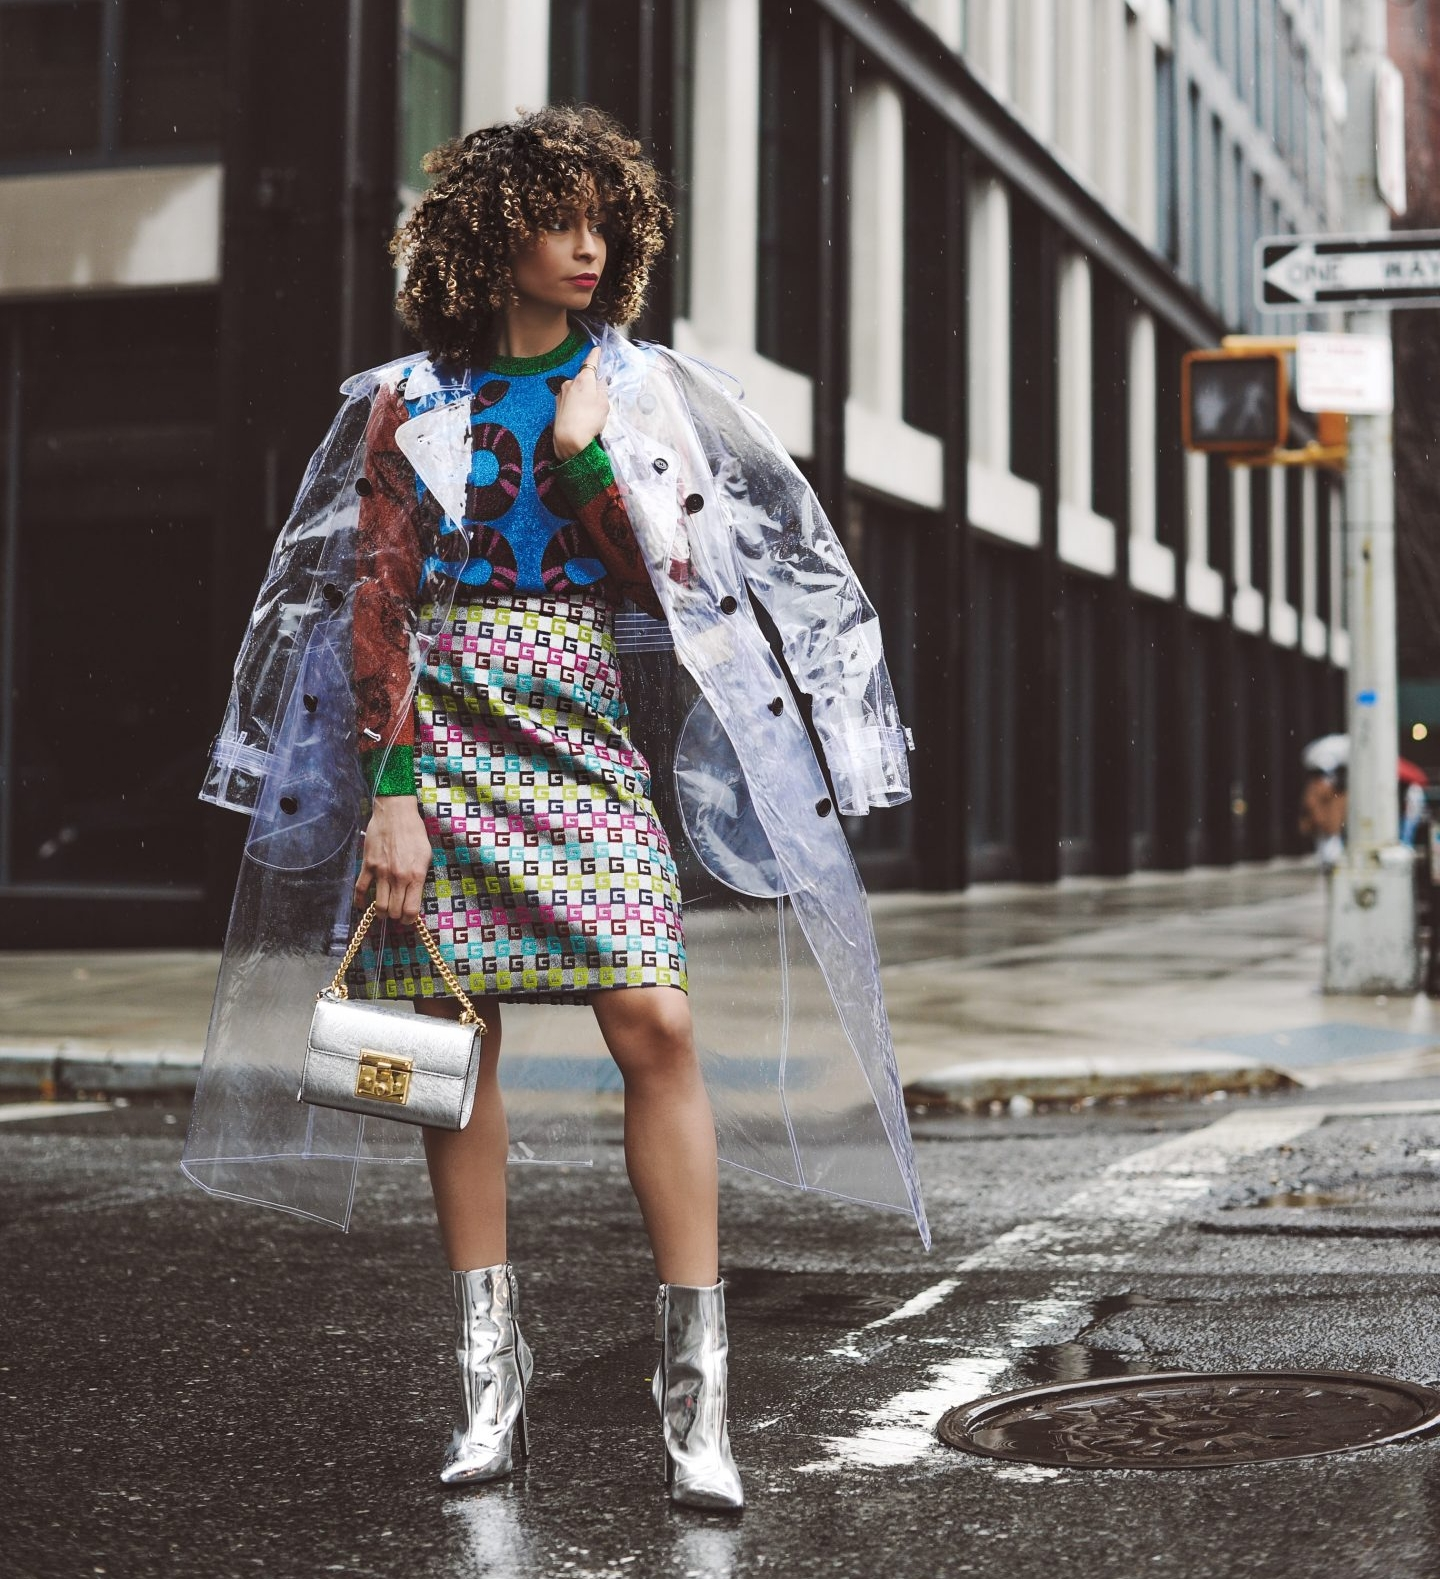 A compilation of street style trends from New York Fashion Week.